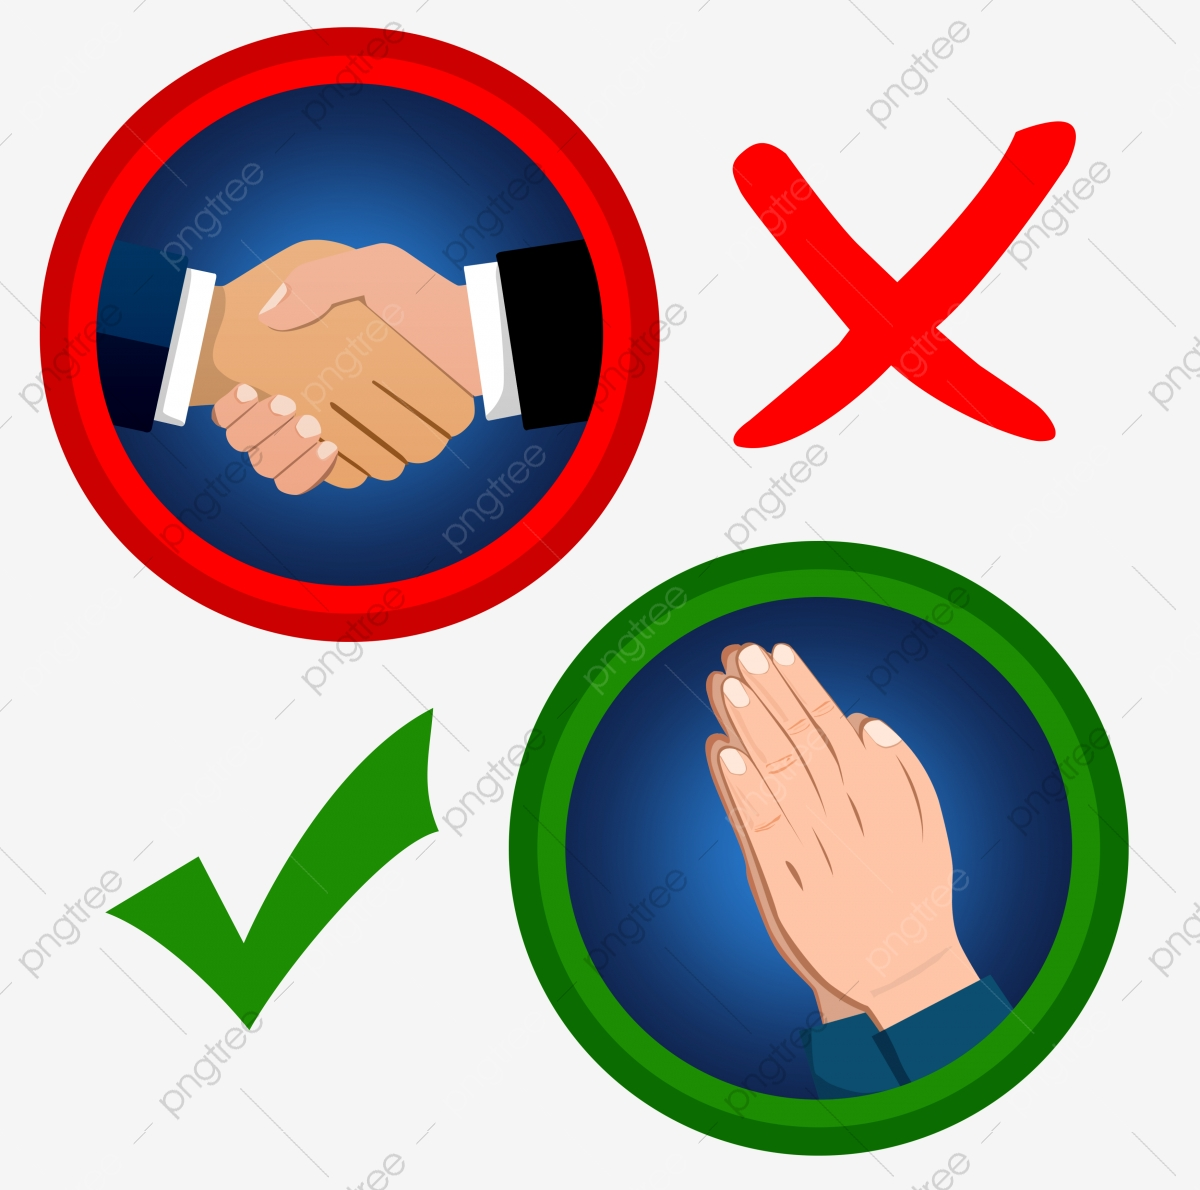 Shake Hands Png Images Vector And Psd Files Free Download On Pngtree Choose from 260+ shake hands graphic resources and download in the form of png, eps, ai or psd. https pngtree com freepng stop coronavirus stop shaking hands do namaste hands 5338749 html